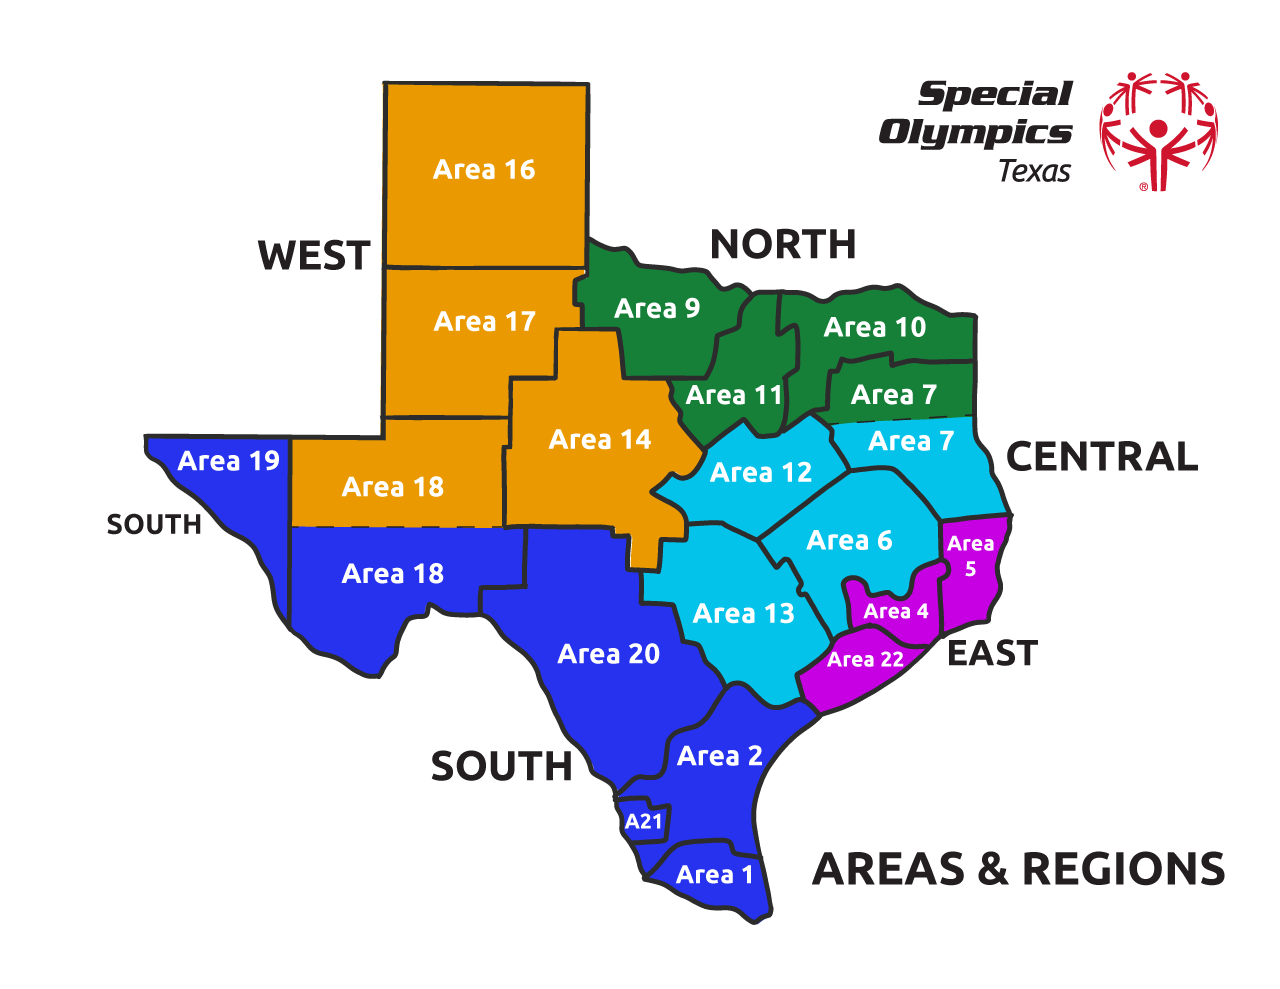 Area Offices on austin texas state map, s fannin surrender at goliad map, san felipe state park, large texas road map, el paso map, san felipe colony, stephen f. austin land grant map, bexar county zip code map, san felipe state historic site, empresario map,